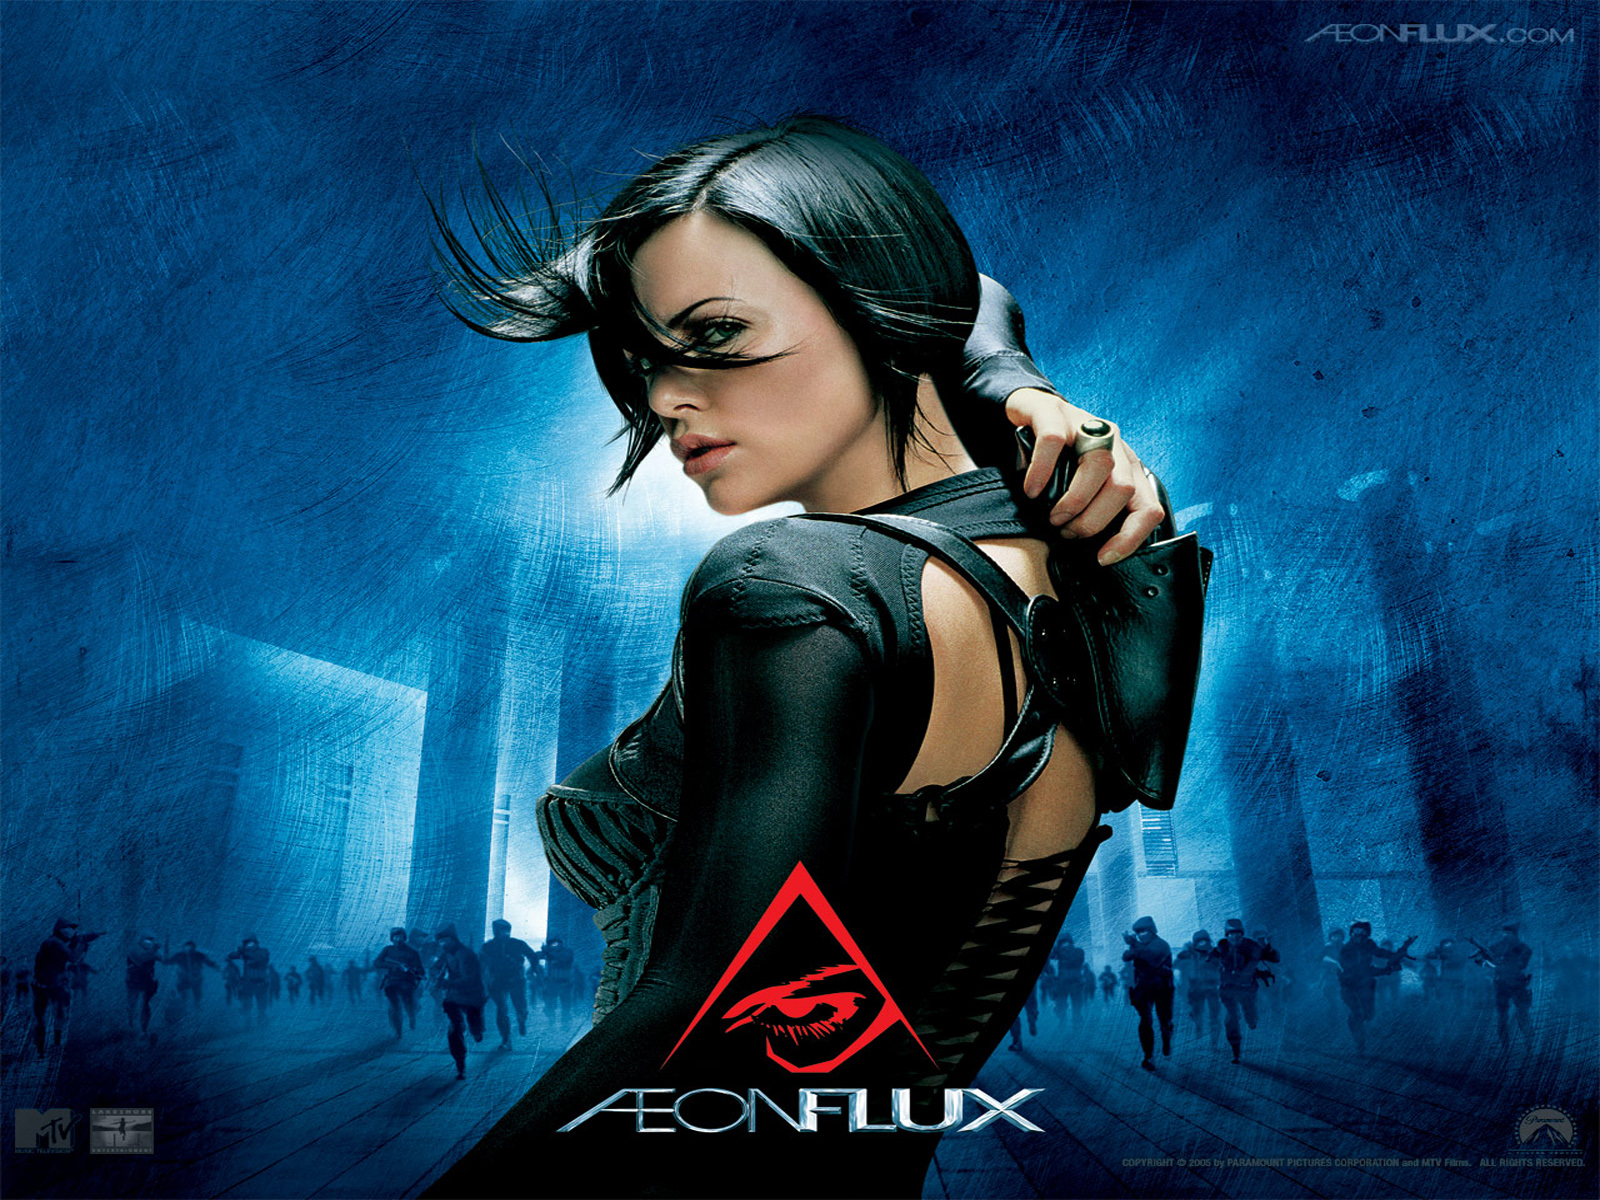 a review of the movie aeon flux Aeon flux turn autoplay off our reviews philip french philip french: brings back memories of logan's run, one of the dreariest sf movies i've ever seen peter.